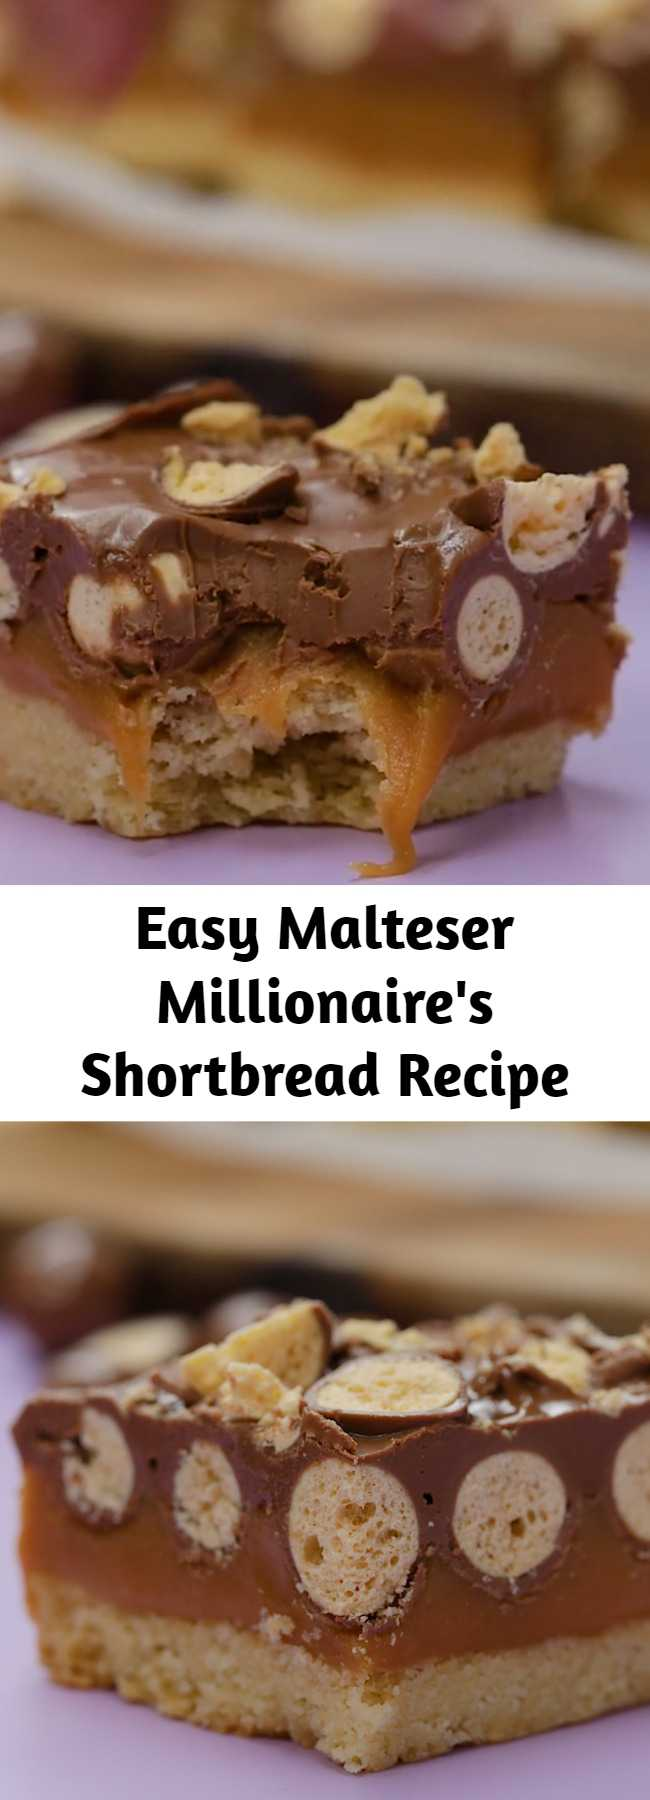 Easy Malteser Millionaire's Shortbread Recipe - To all the Malteser fan out there, this is a next level Malteser Millionaire Shortbread!